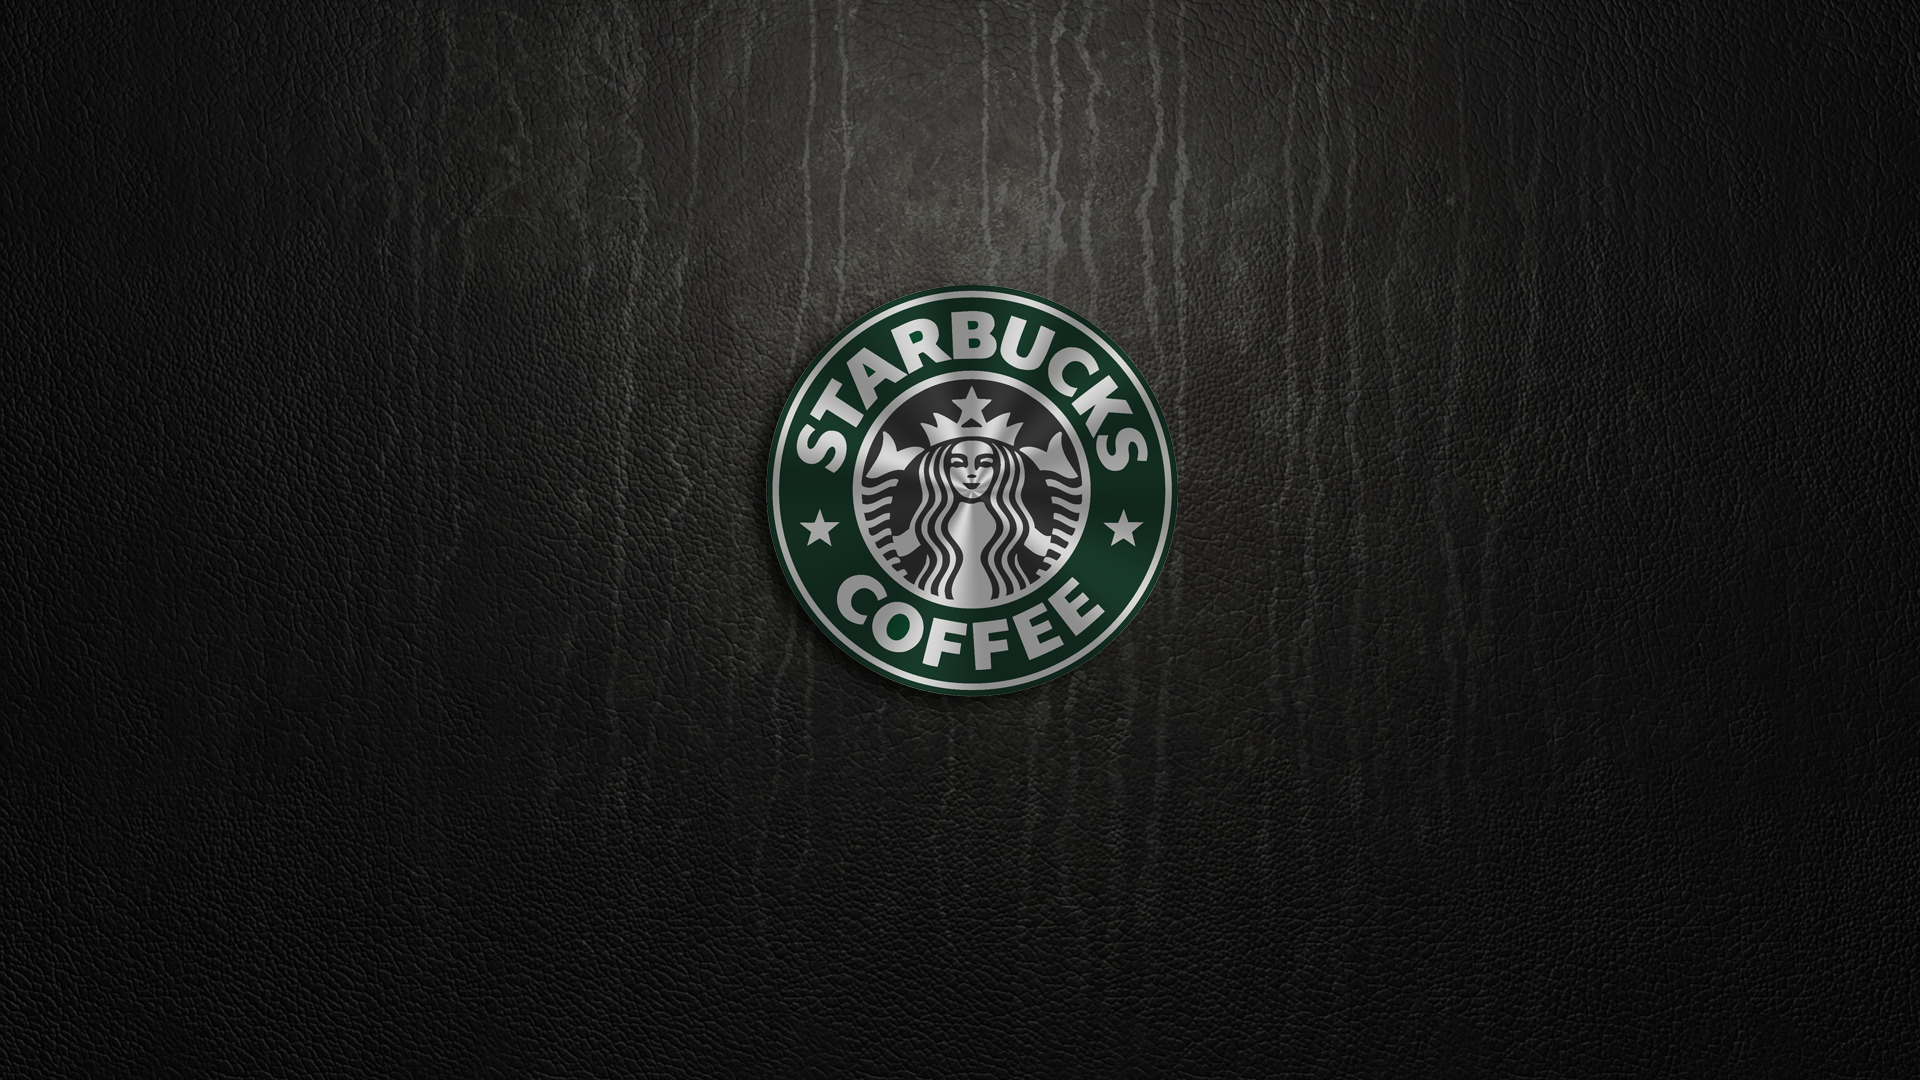 Starbucks Desktop Wallpapers › 39495810 Starbucks Pictures